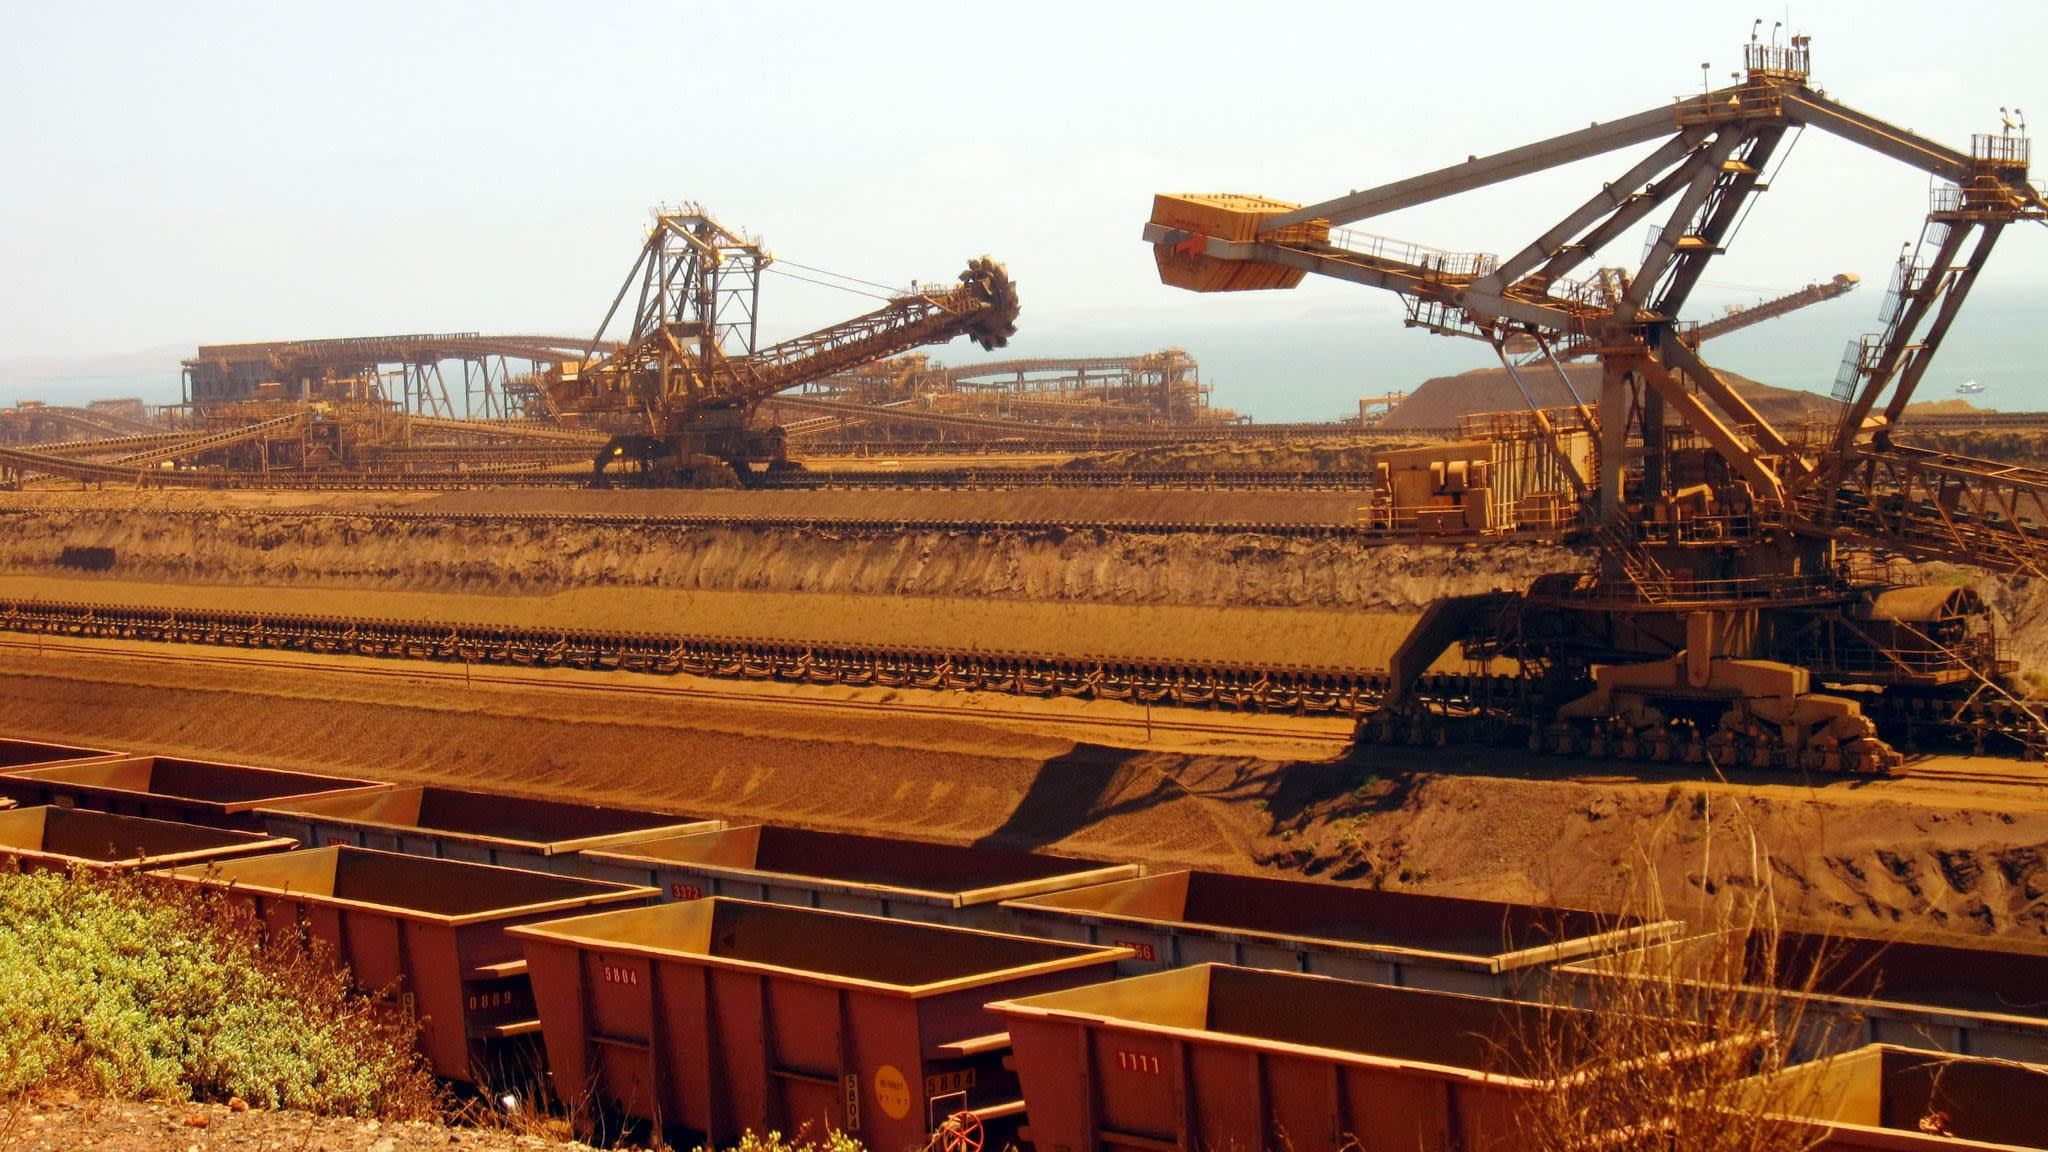 Rio Tinto defends expansion strategy as iron ore output surges | Financial Times